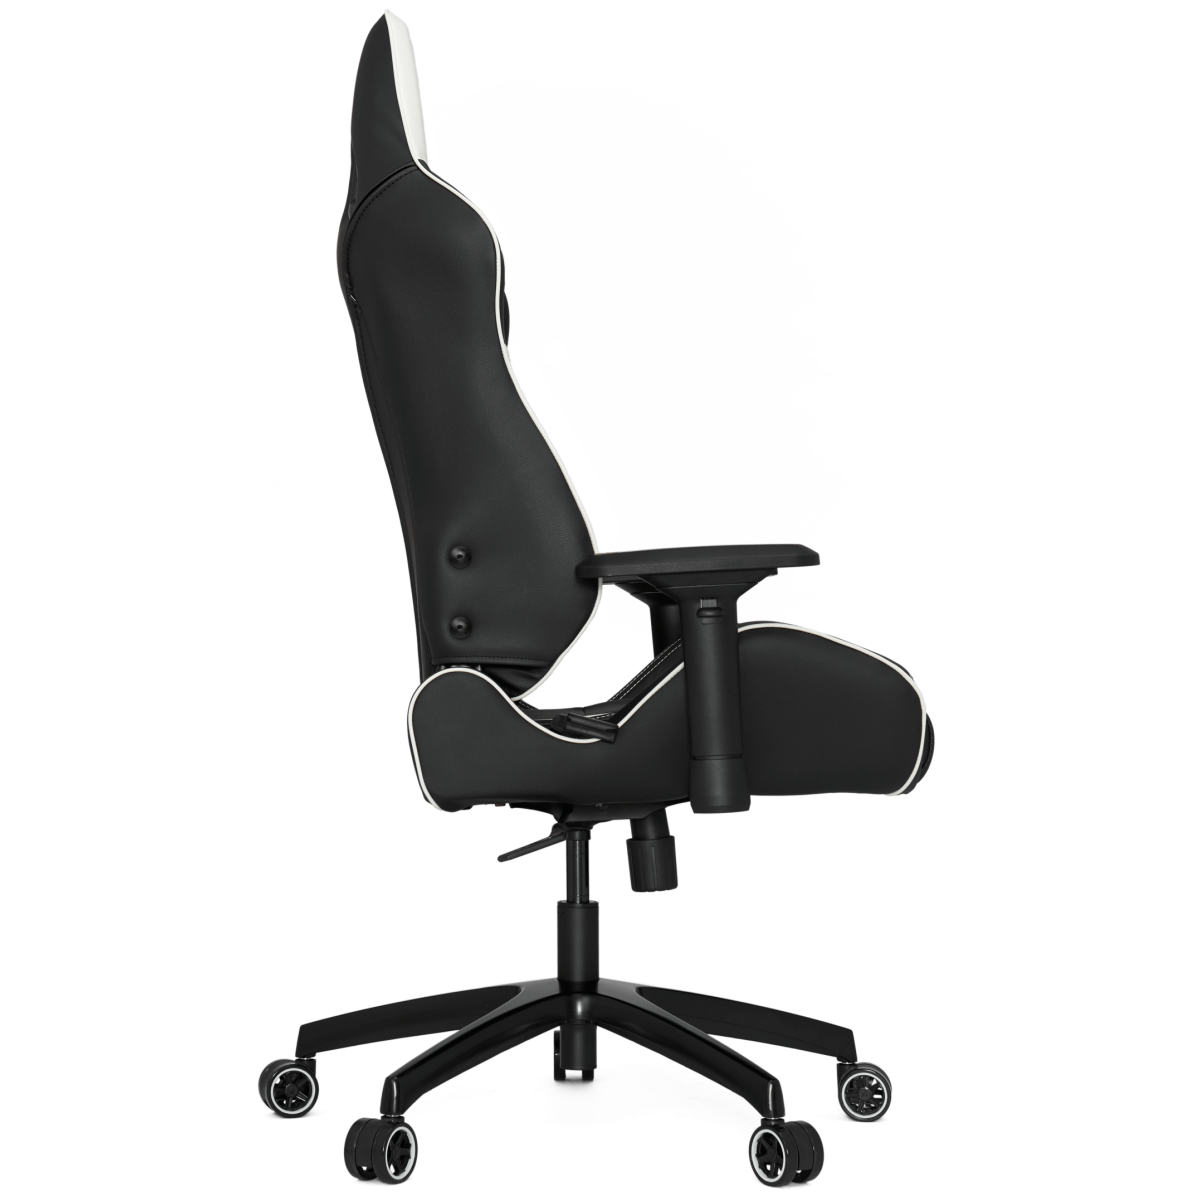 Cadeira Gamer Vertagear Racing SL5000, Black-White, VG-SL5000_WT